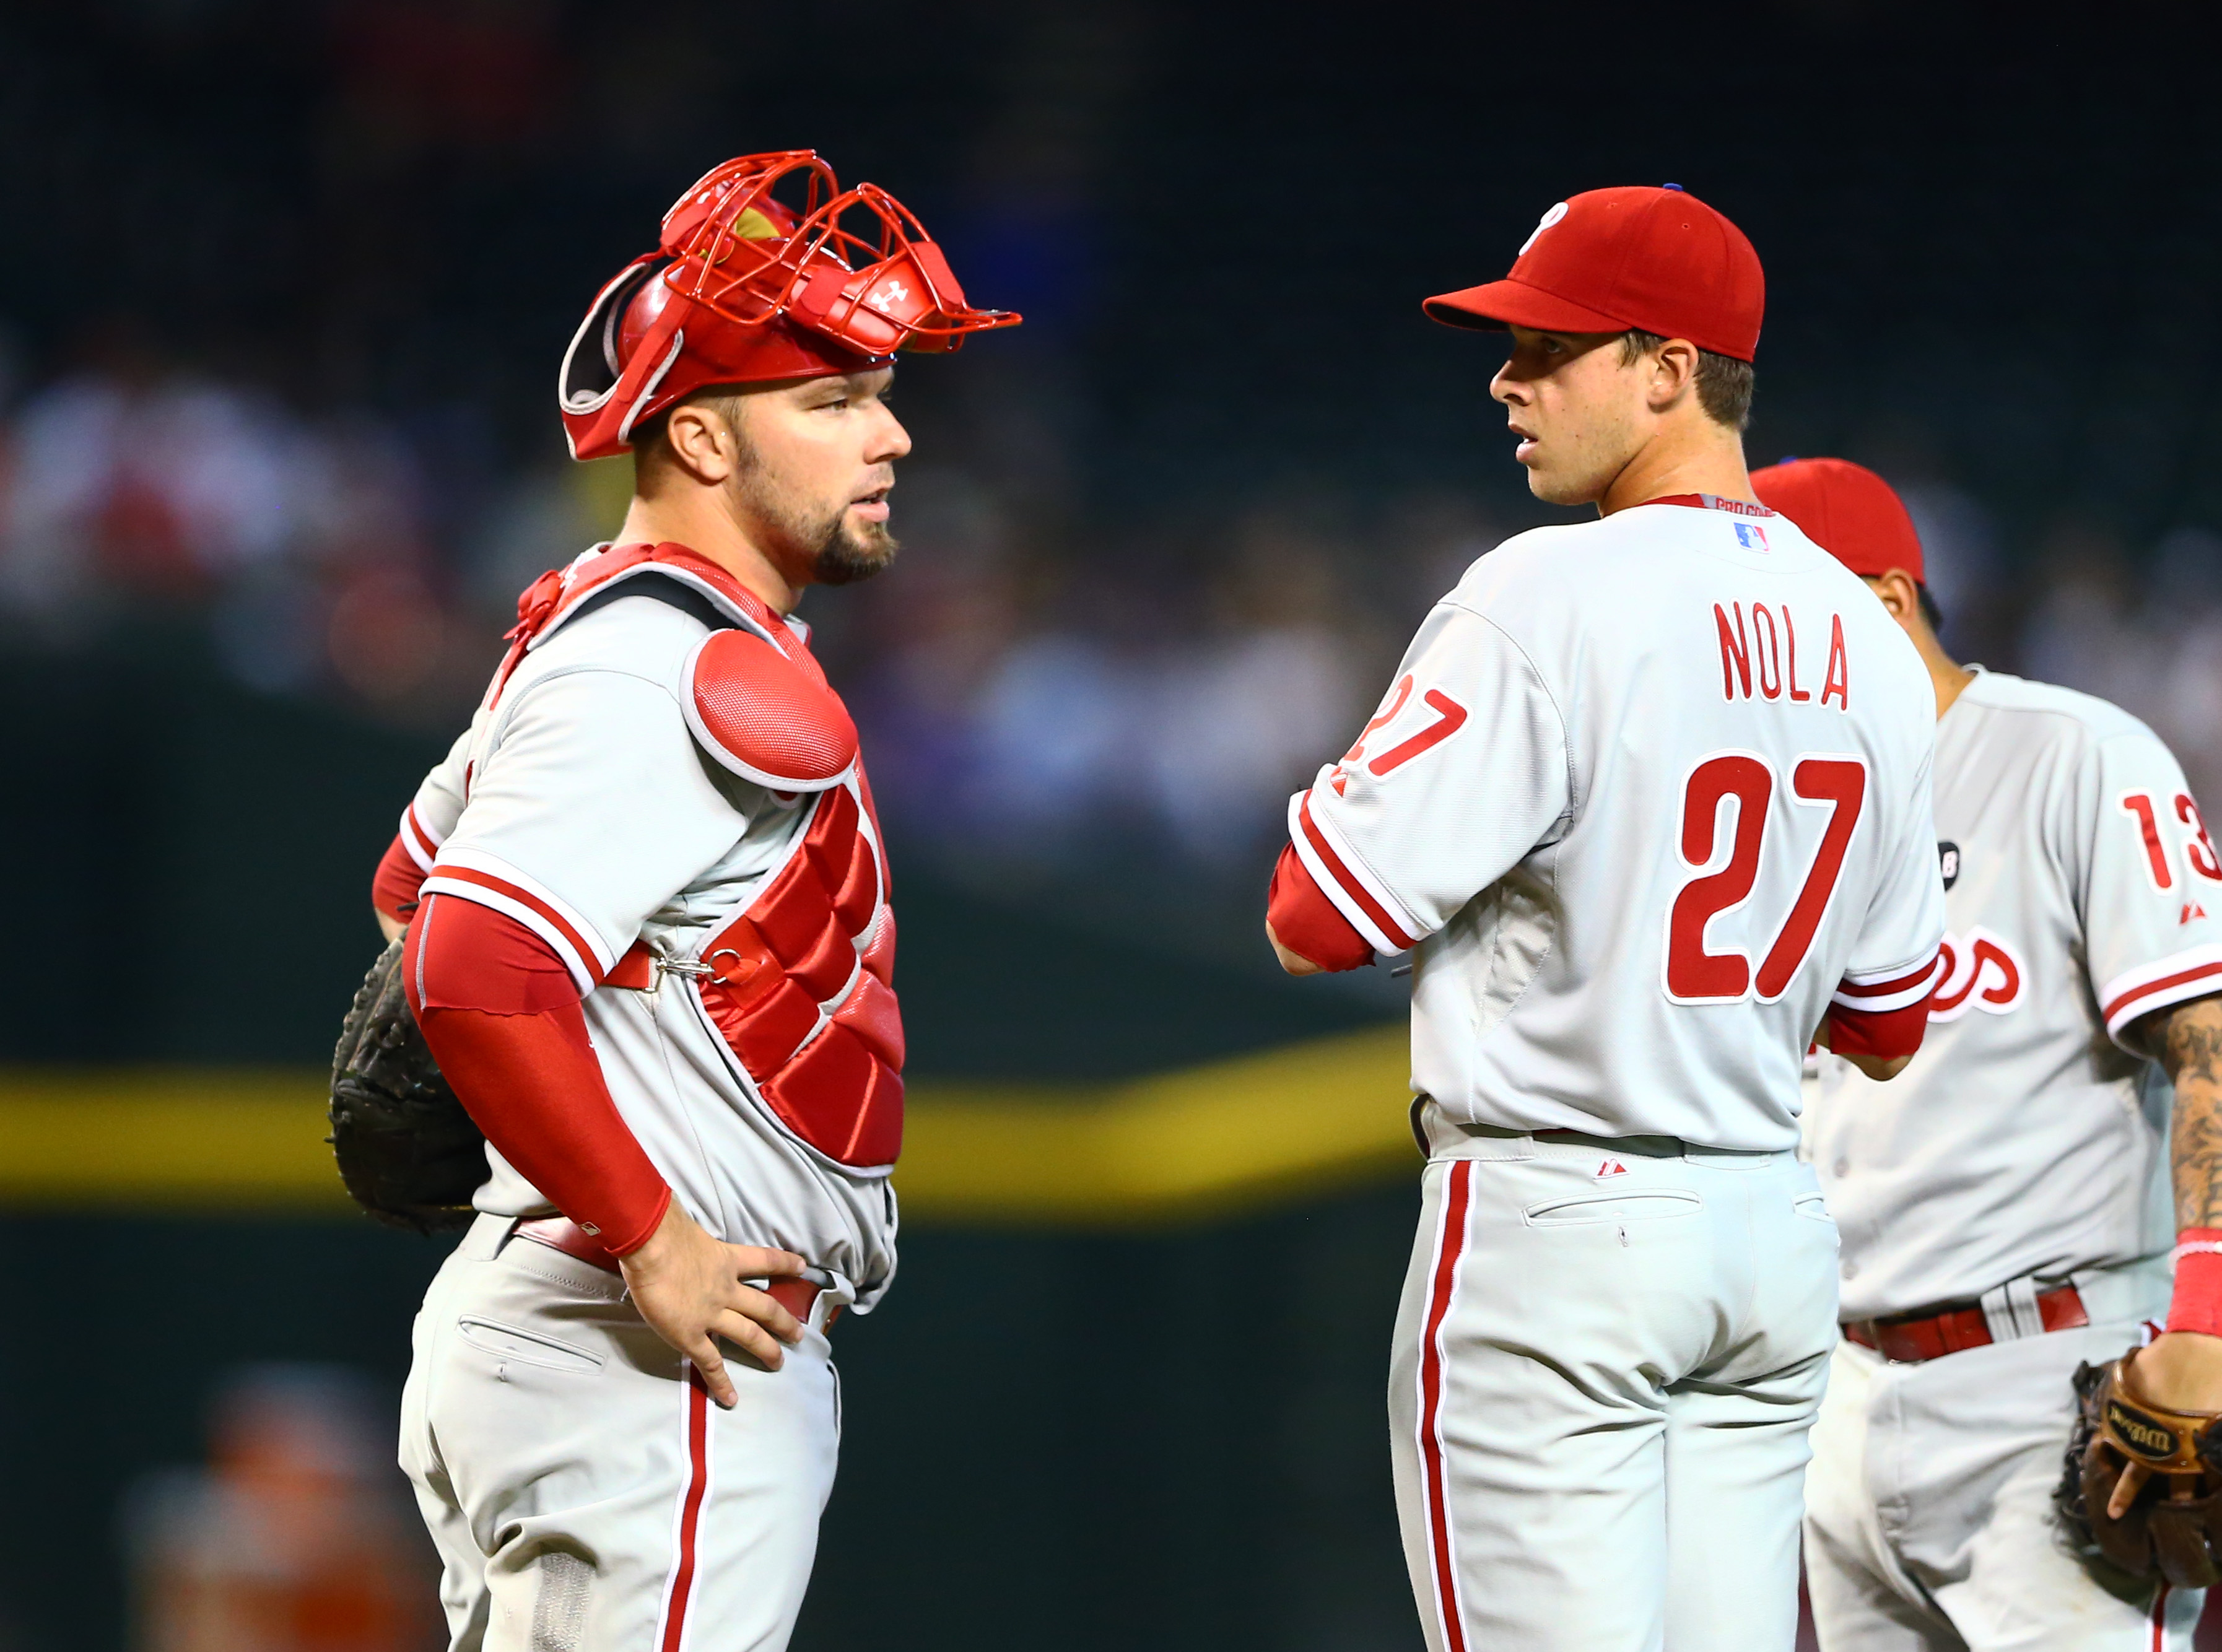 Phillies Projected to Finish Last in NL East by PECOTA System